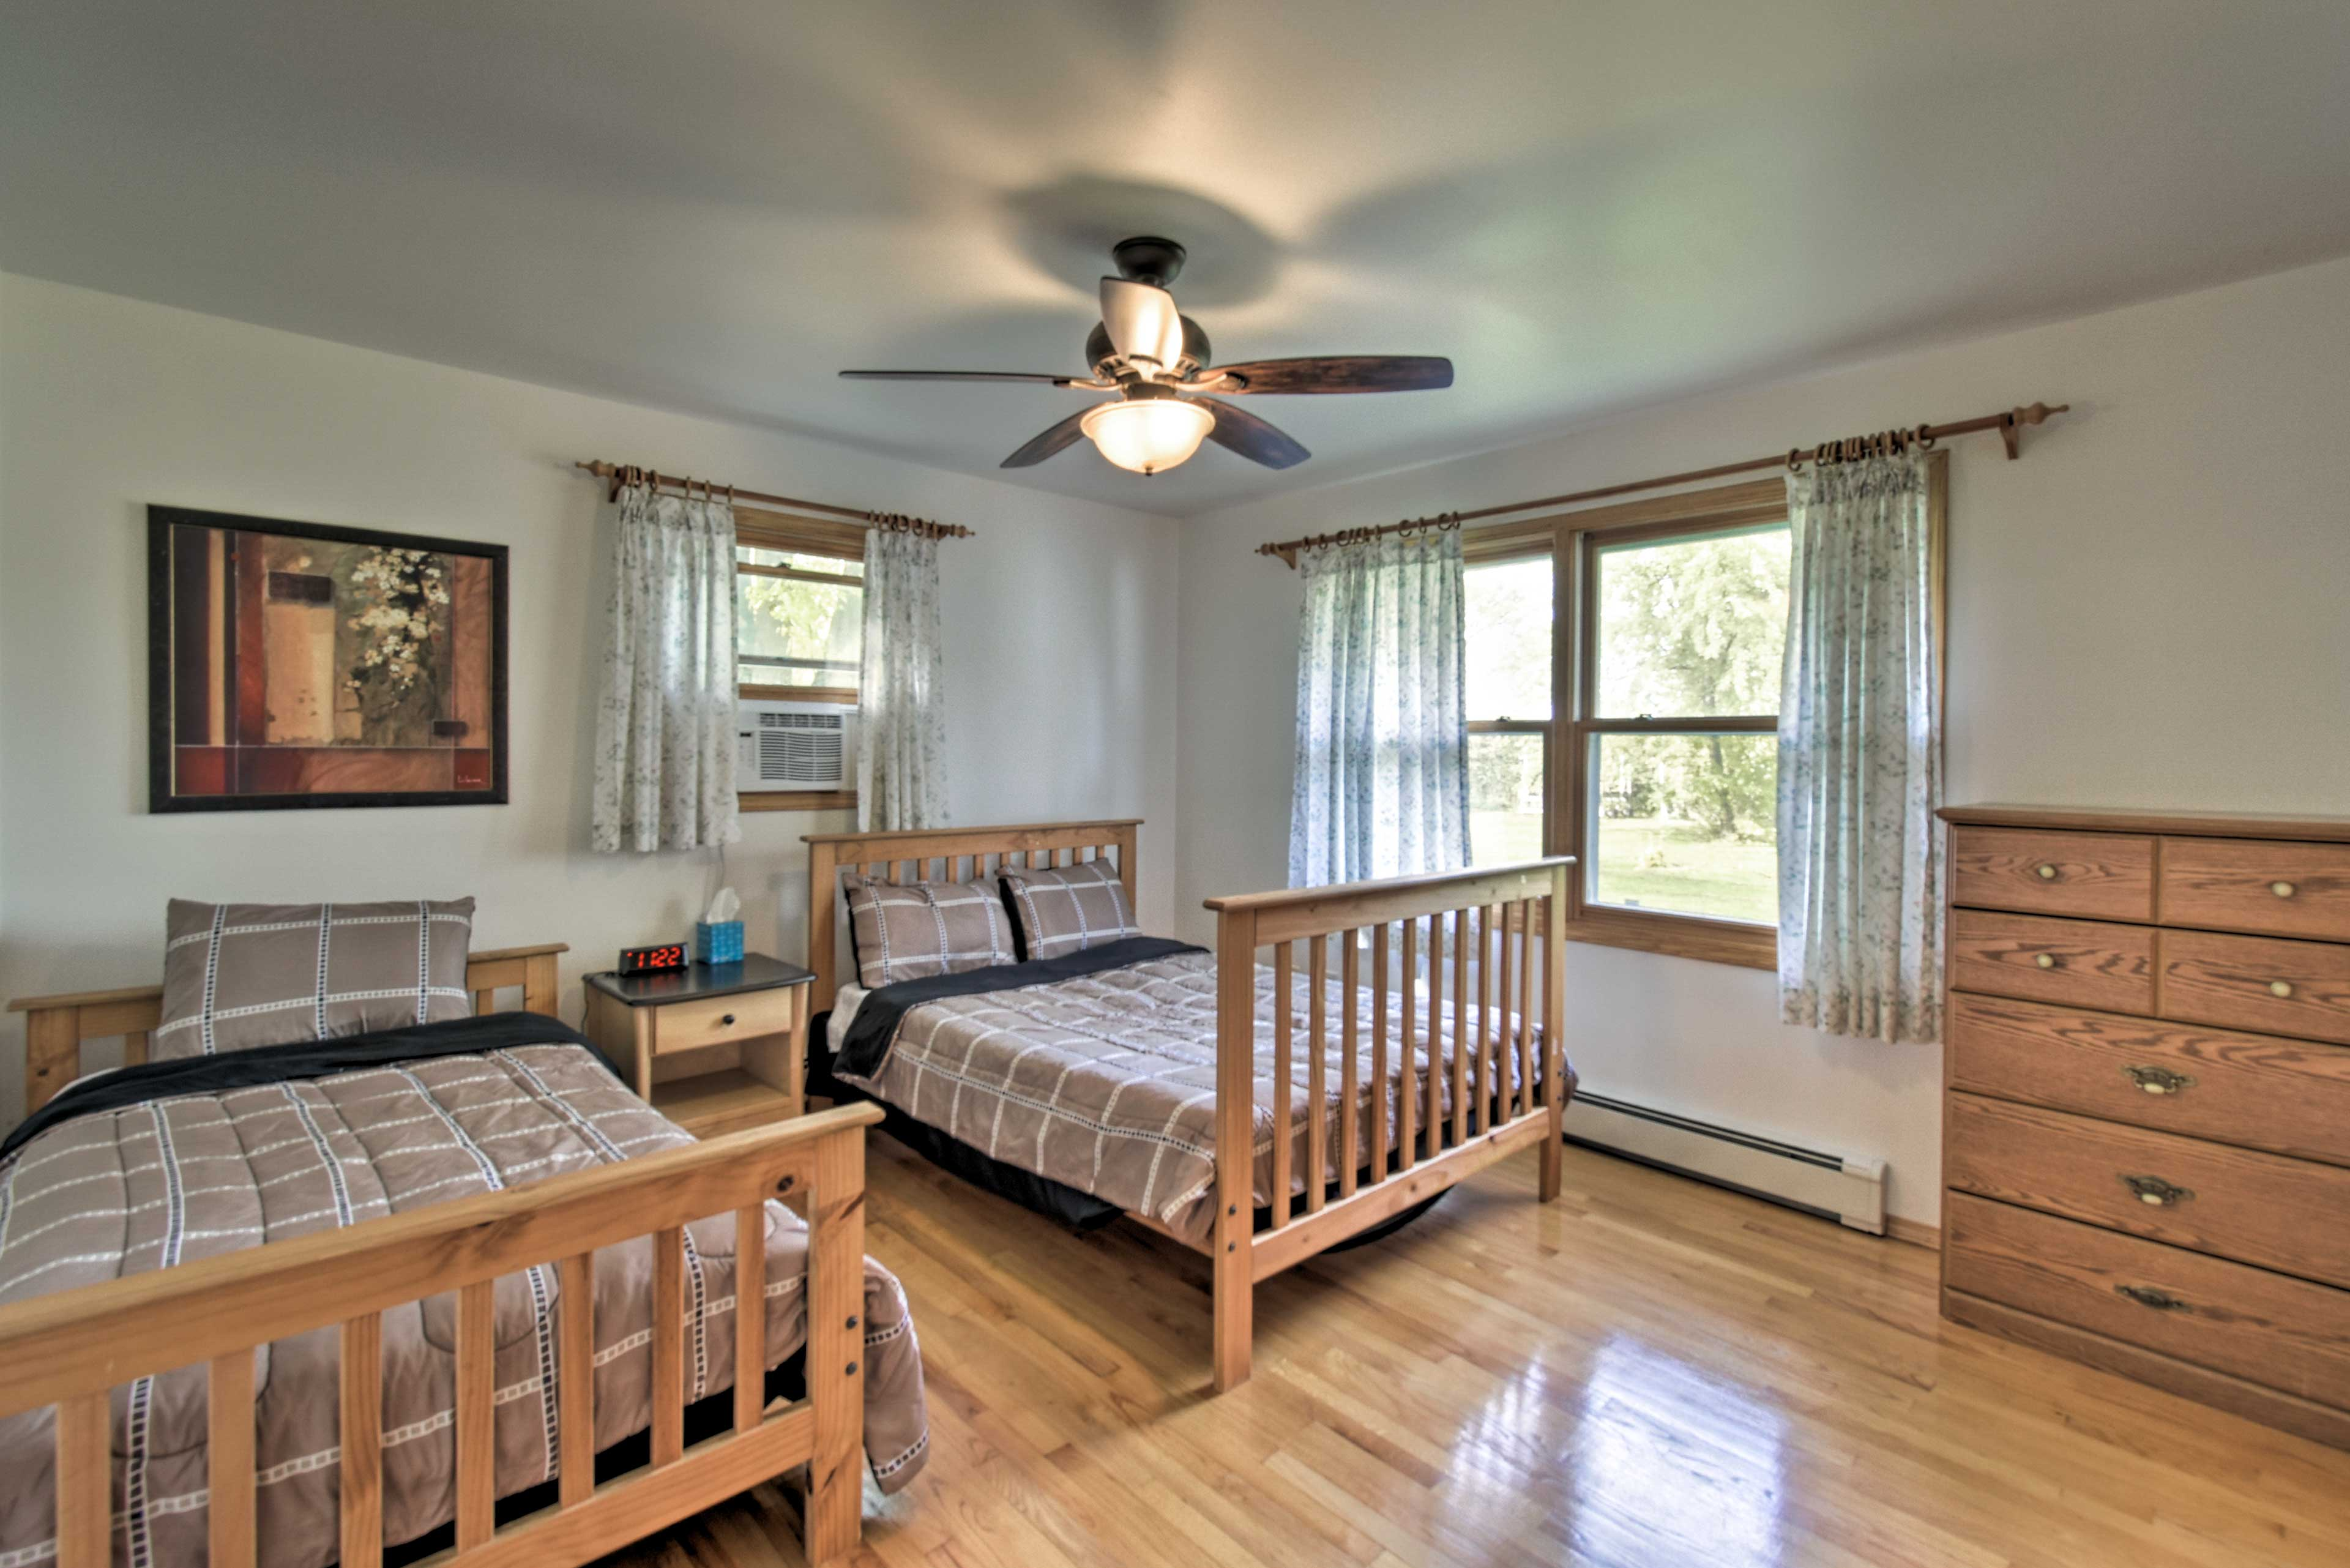 Retreat to one of 2 bedrooms for a peaceful slumber.